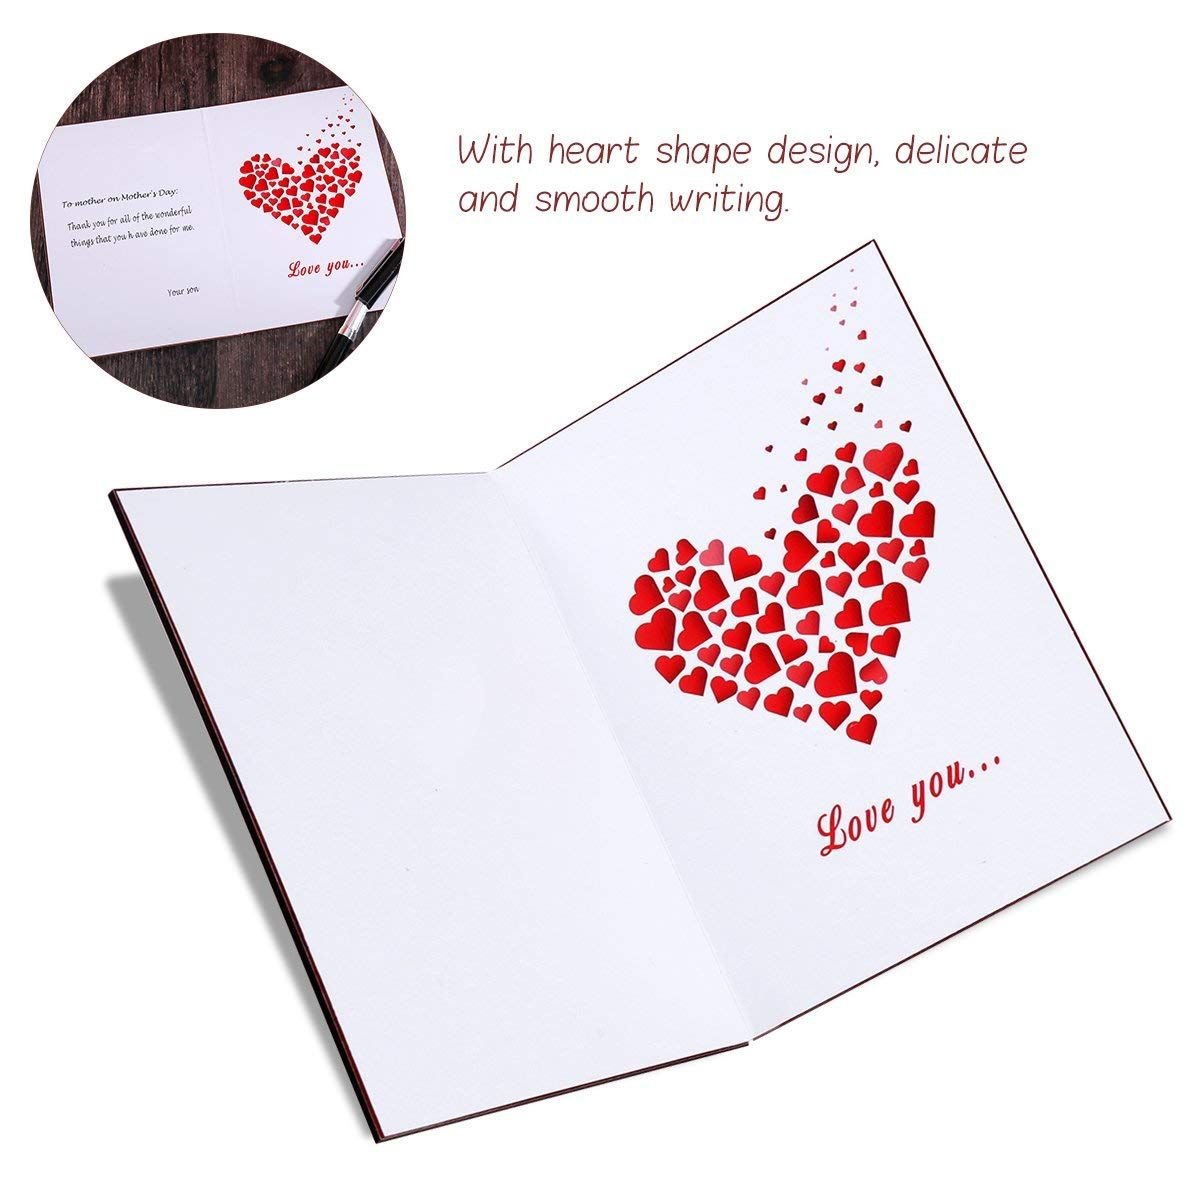 7 99 amazon com love you card handmade for anniversary birthday valentine wedding wooden greeting cards for any occasion office products